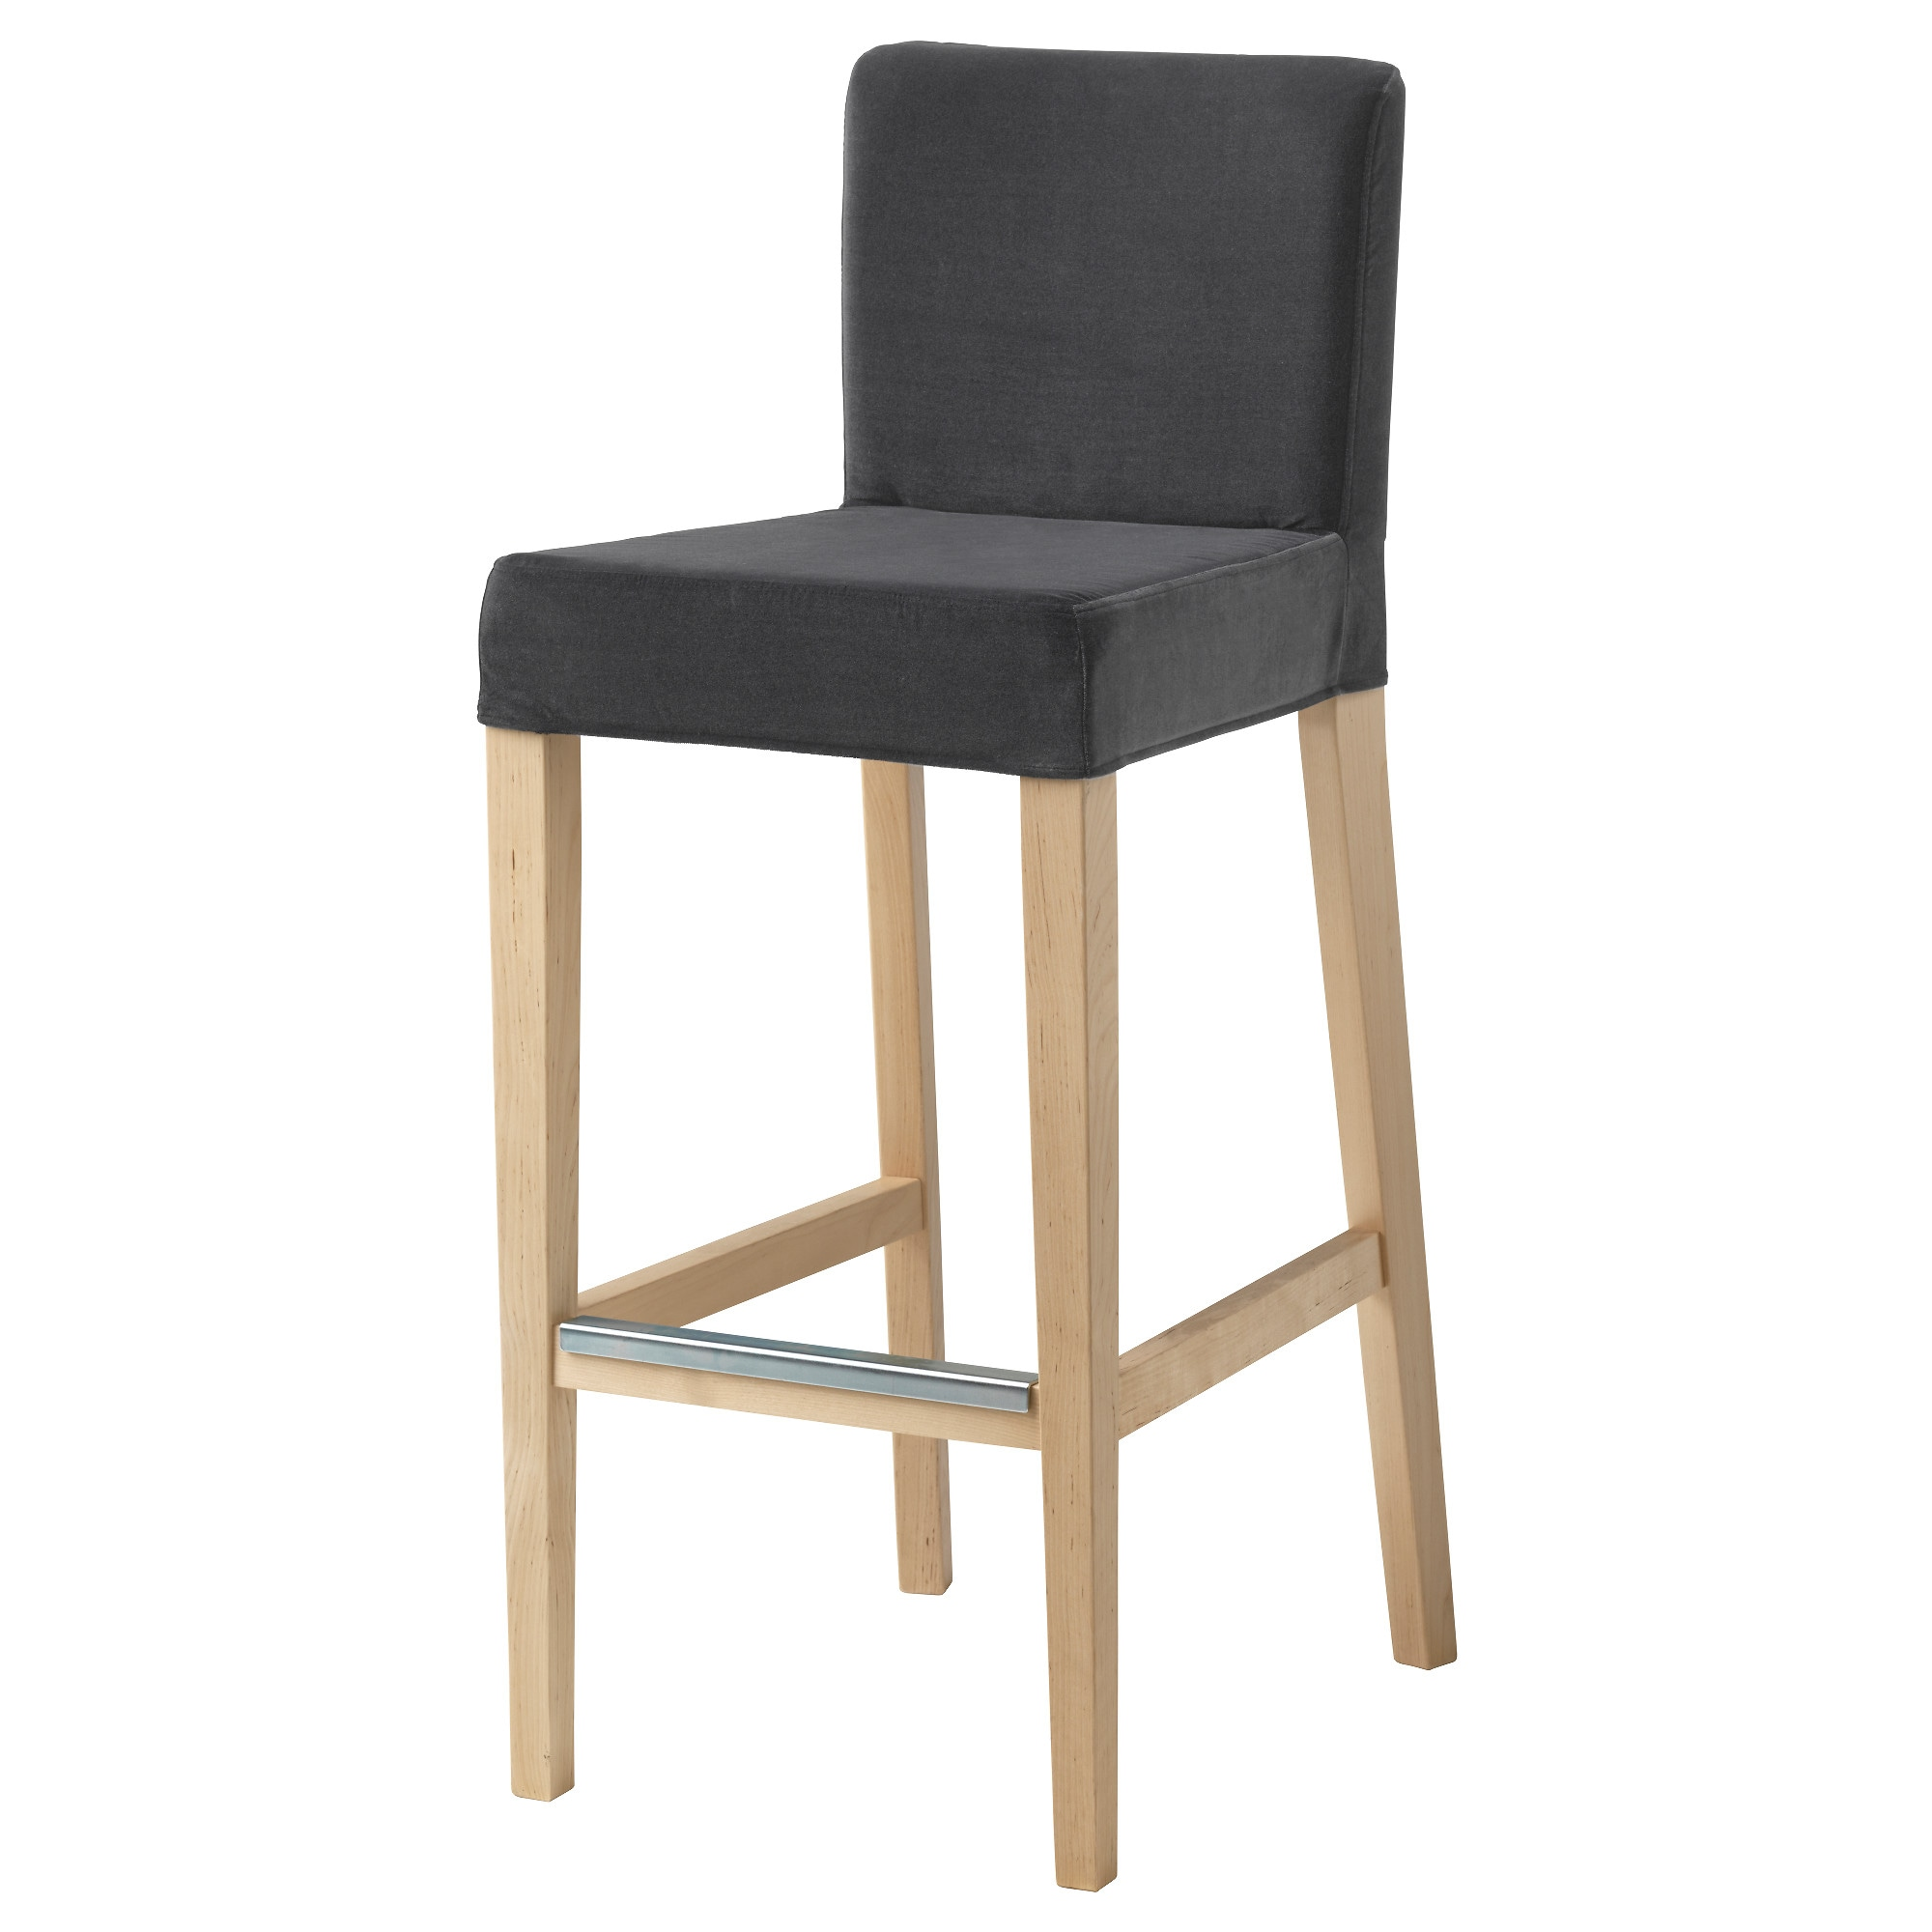 Tabouret bar exterieur awesome tabouret snack ikea de bar for Tabouret de bar exterieur ikea